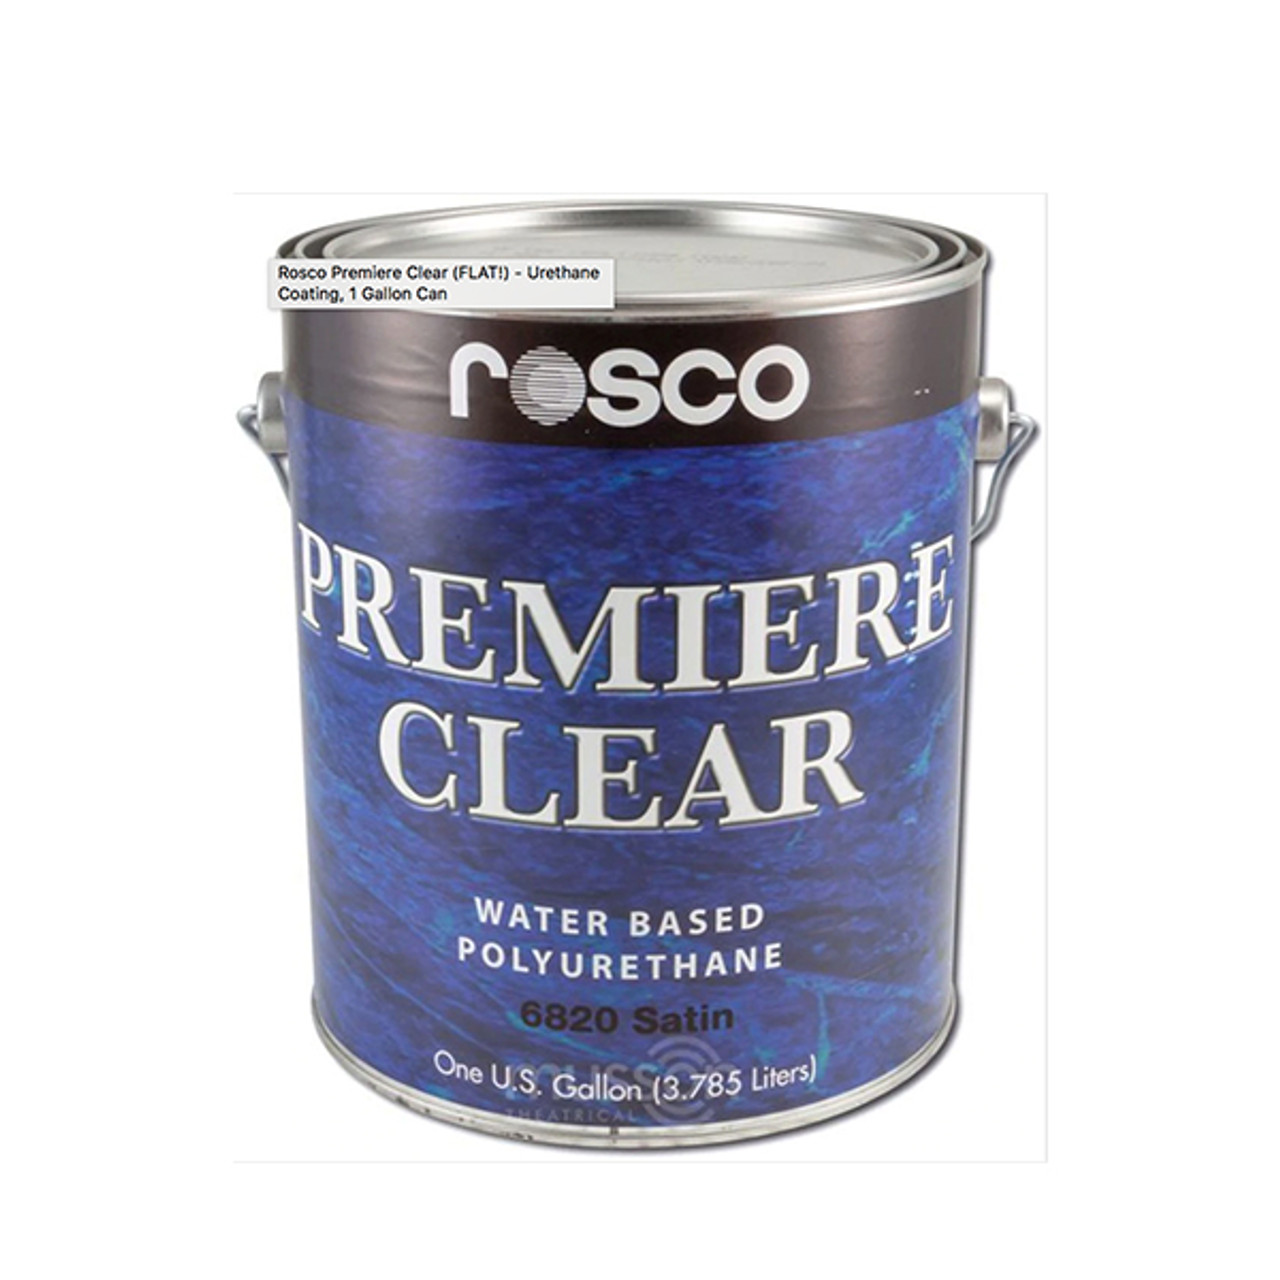 Rosco Premiere Clear (FLAT!) - Urethane Coating, 1 Gallon Can